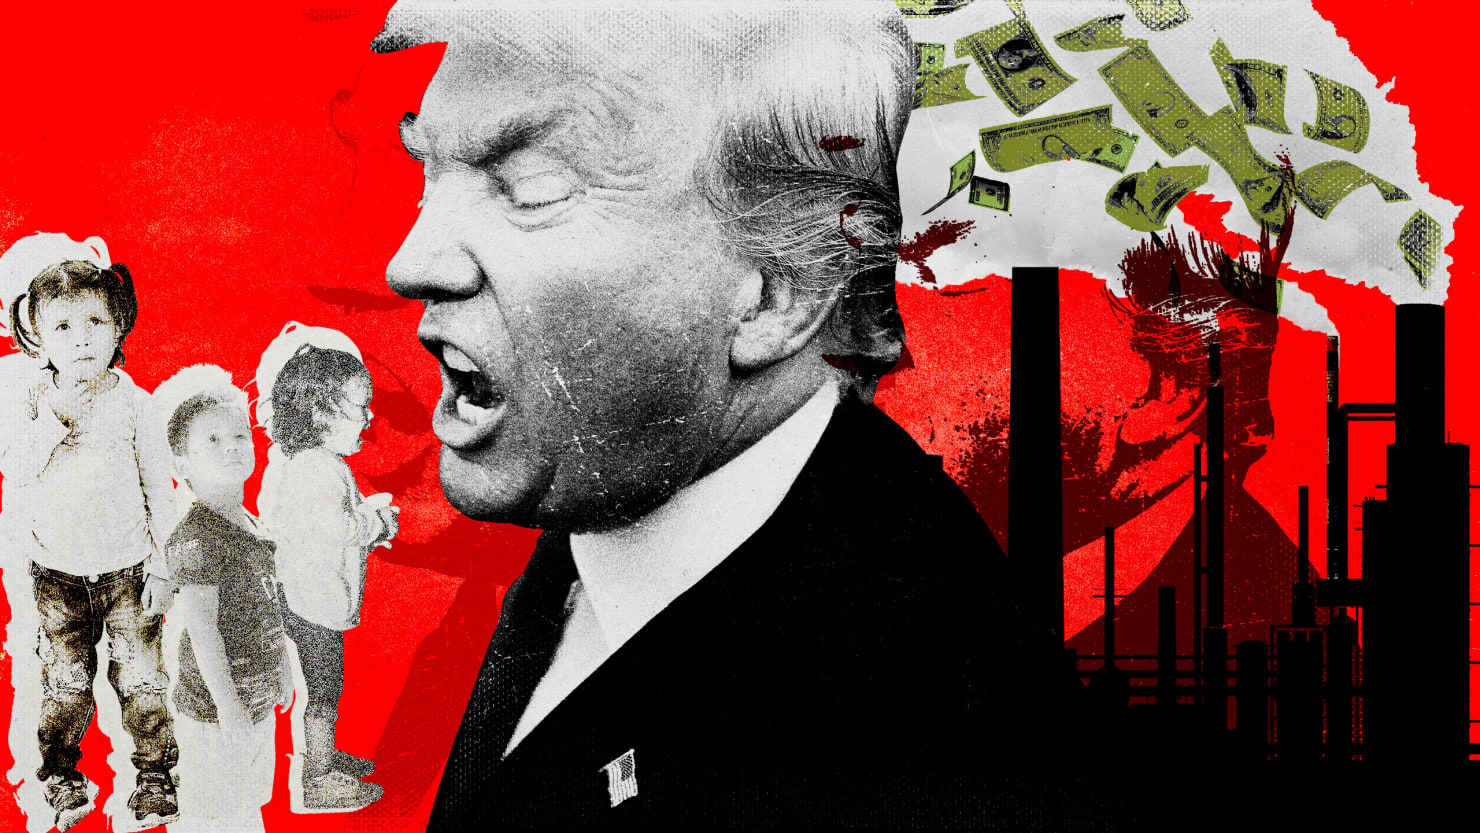 Trump Locks Up Immigrant Kids, but Not Bankers or Polluters